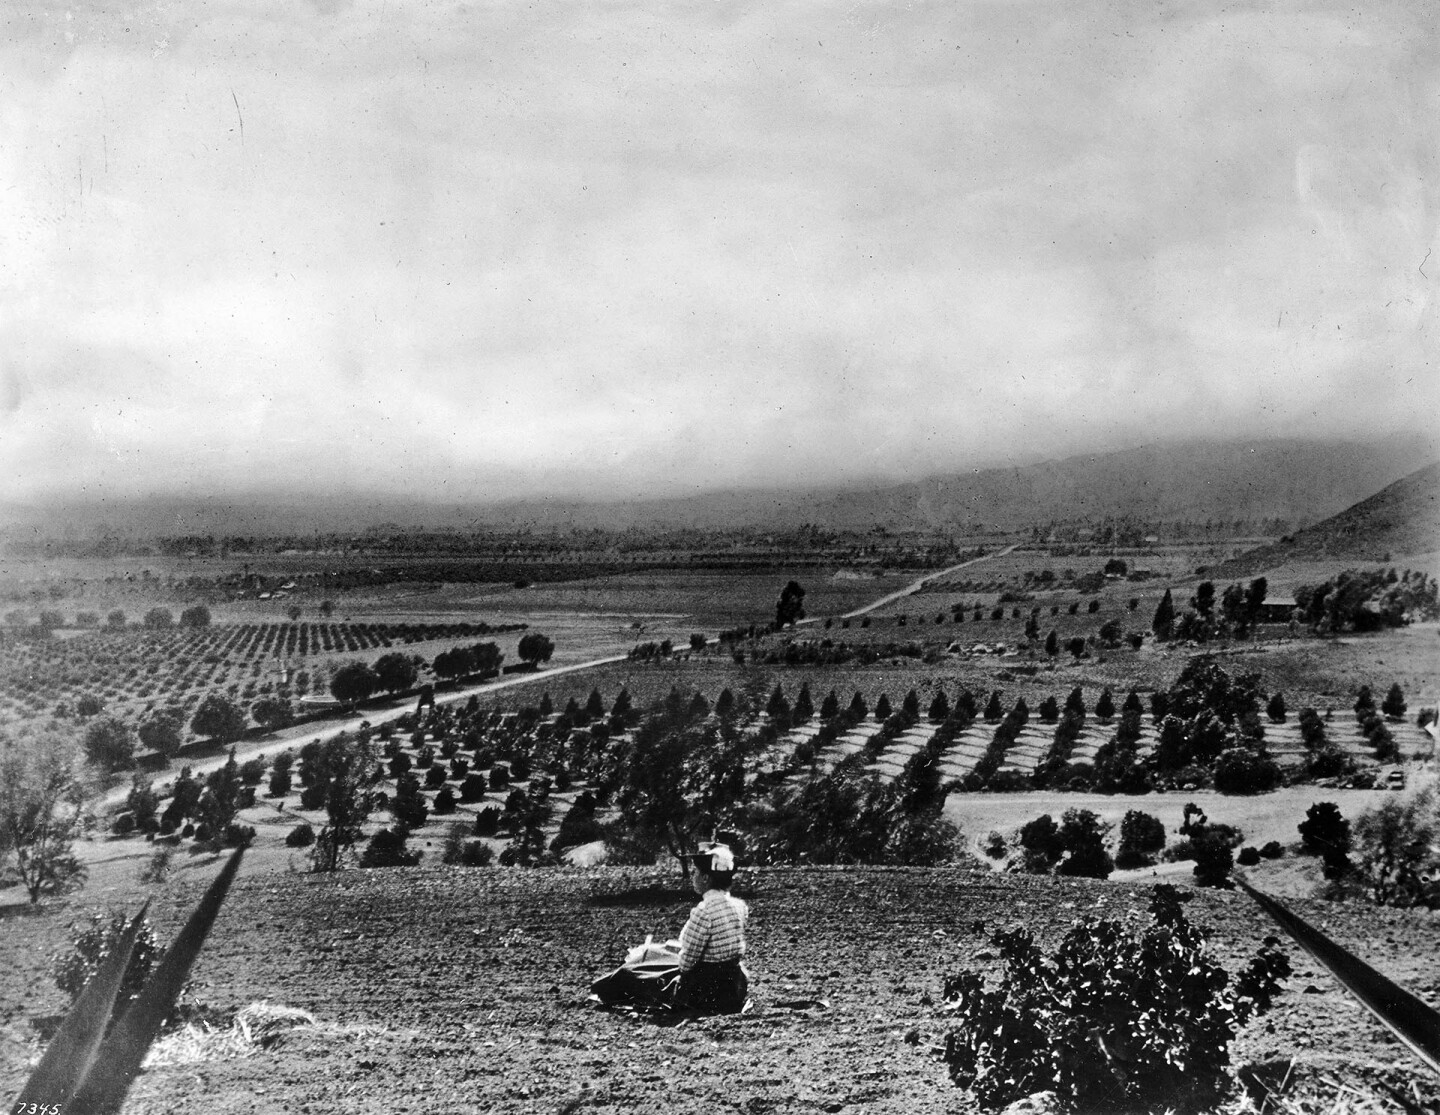 View of Hollywood in 1905, looking west by southwest from Laughlin Park. Courtesy of the Title Insurance and Trust, and C.C. Pierce Photography Collection, USC Libraries.